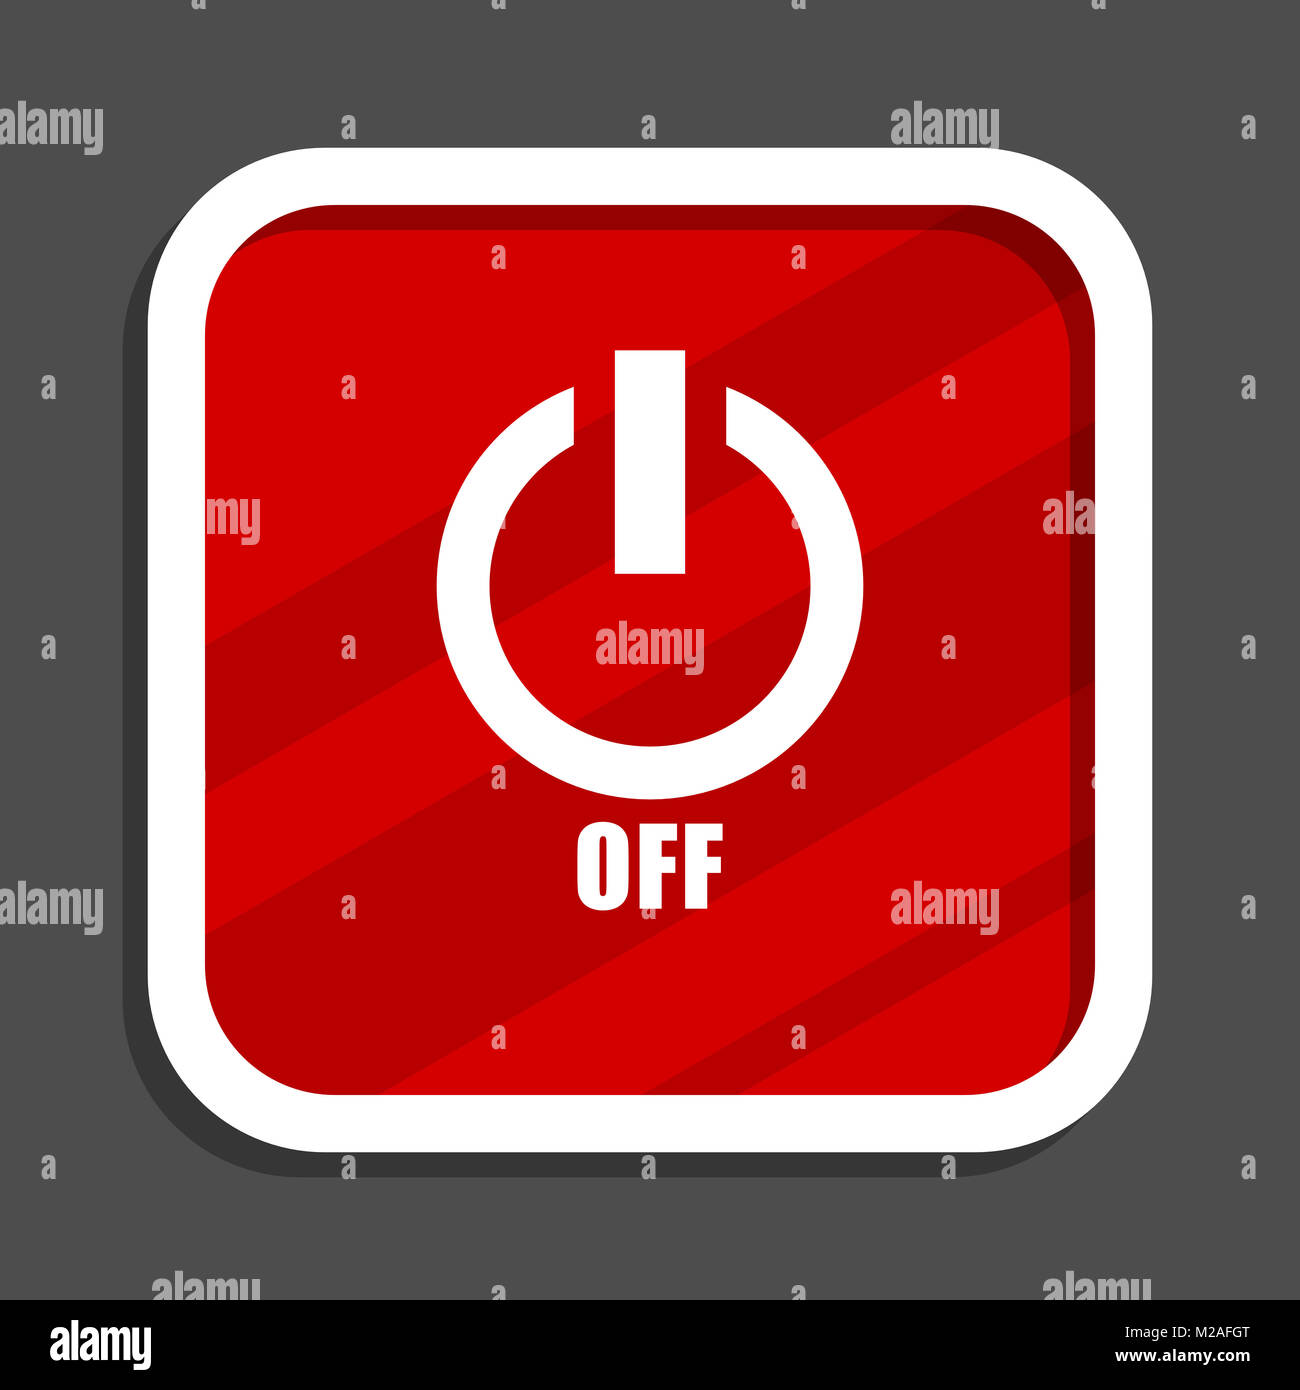 Power Off Icon Flat Design Square Internet Banner Stock Photo